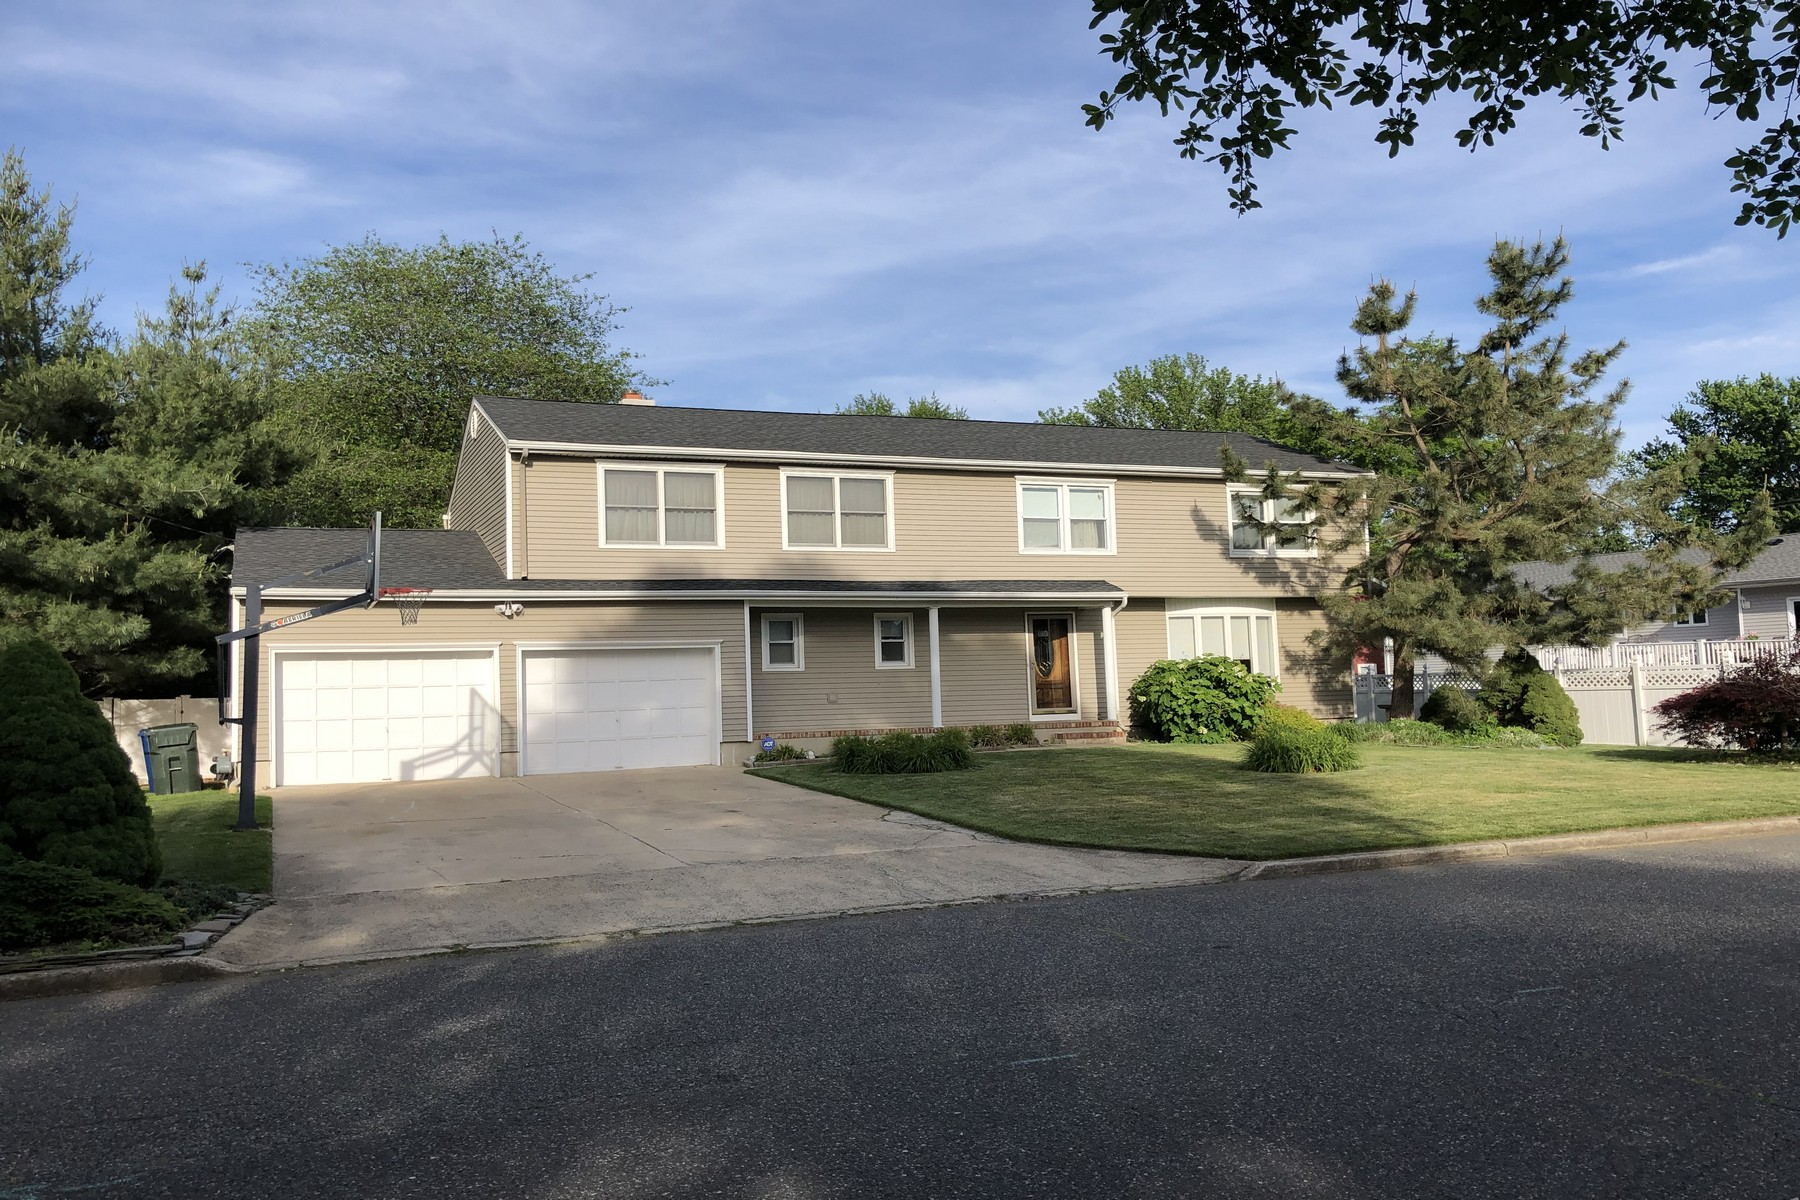 Single Family Homes for Sale at 1703 Melville St., Oakhurst 1703 Melville St. Oakhurst, New Jersey 07755 United States